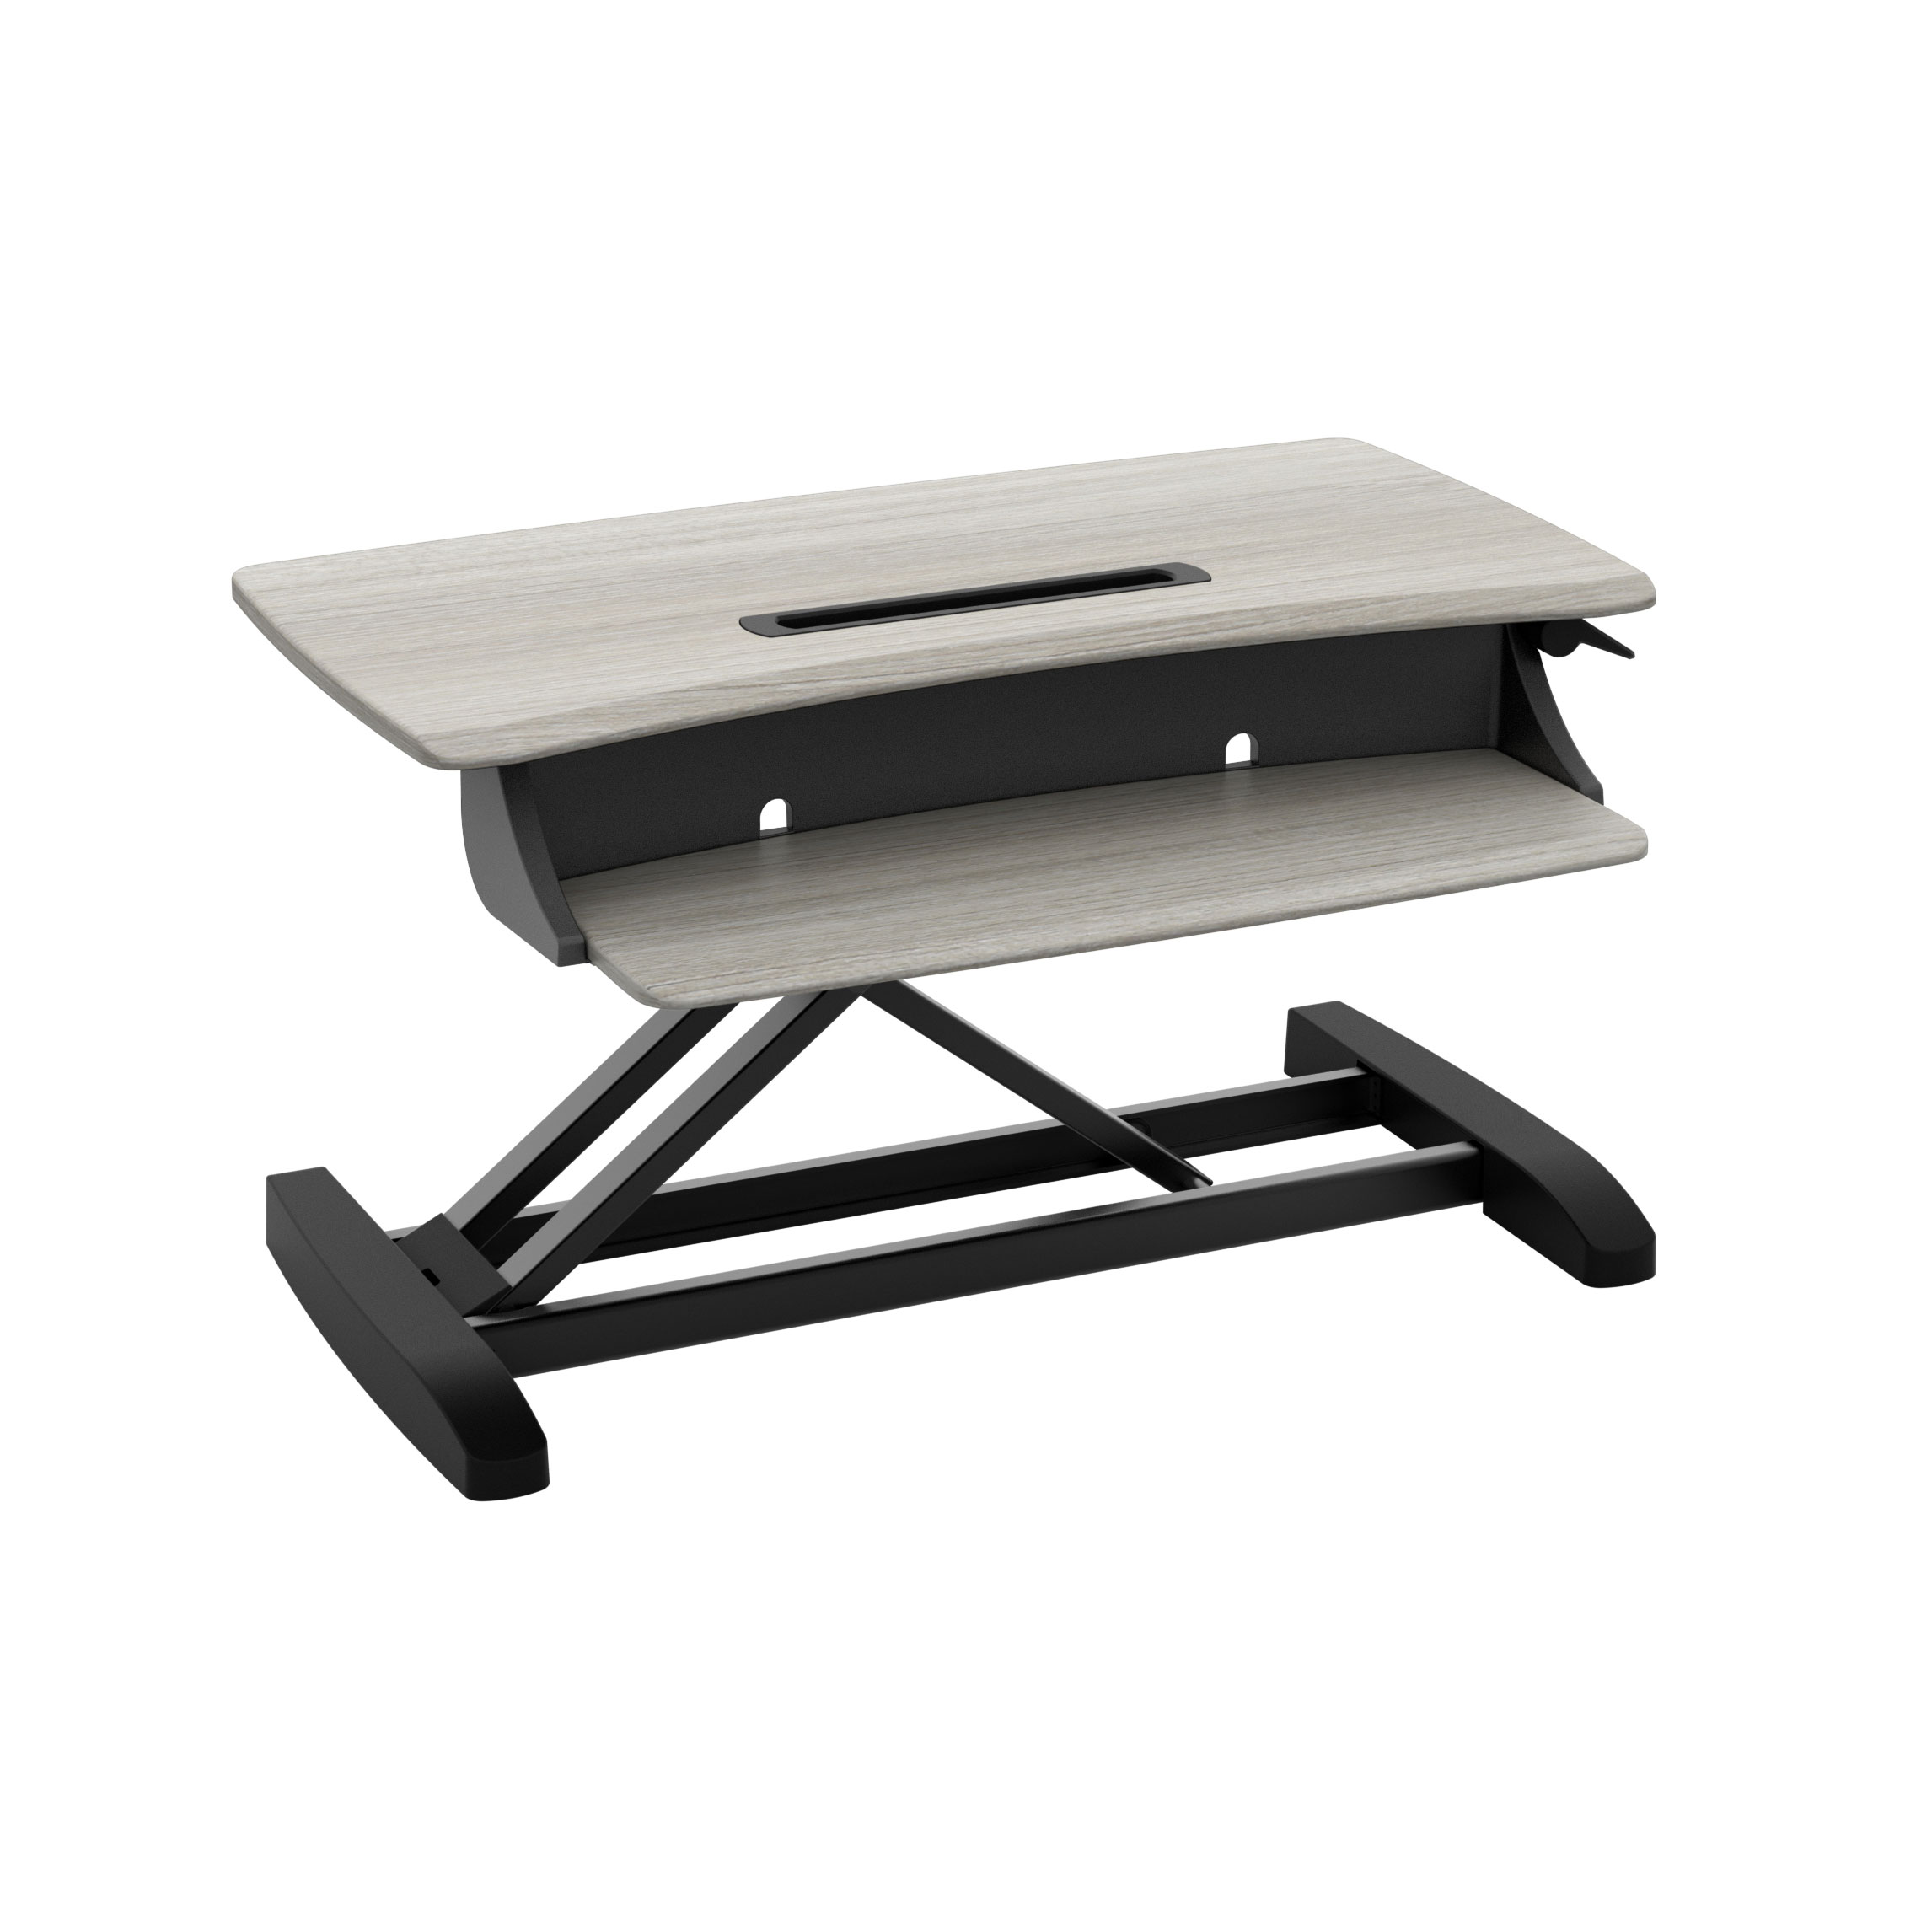 converter workstation and desk workfit height most ergotron varidesk stand peerless retailers sit standing creativity